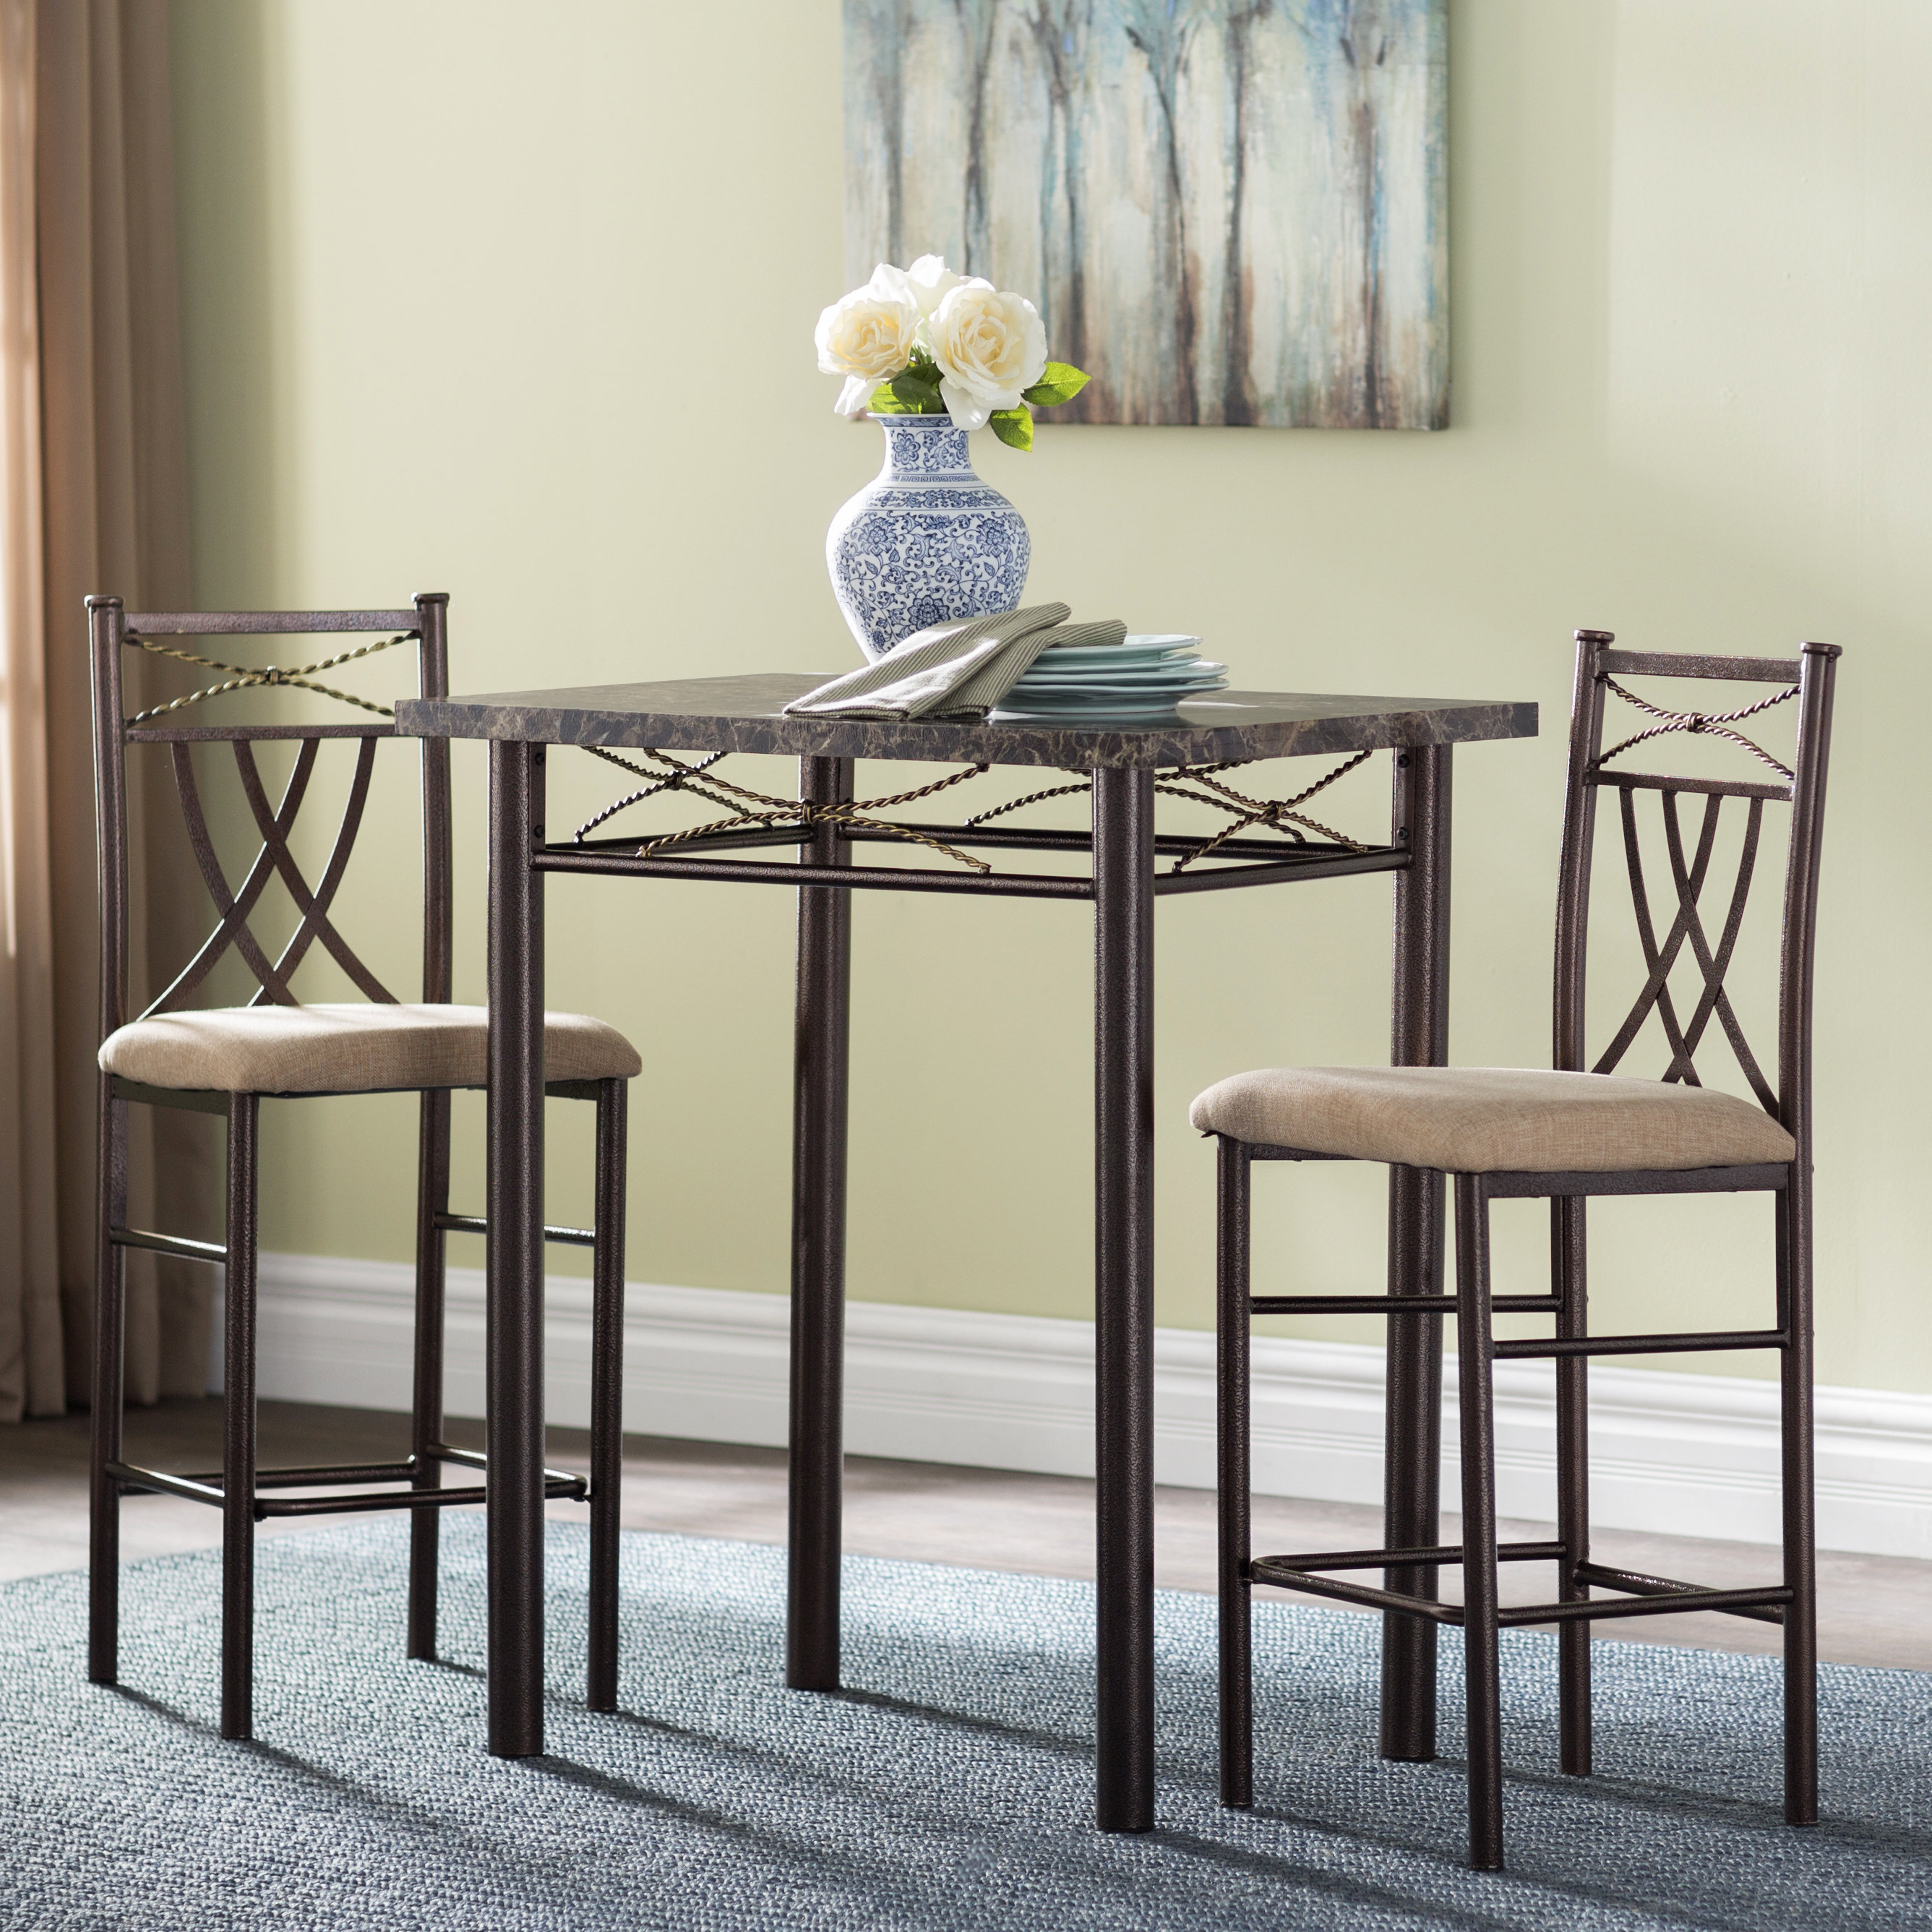 Best And Newest Cincinnati 3 Piece Dining Sets Regarding Andover Mills Cincinnati 3 Piece Dining Set & Reviews (View 3 of 25)